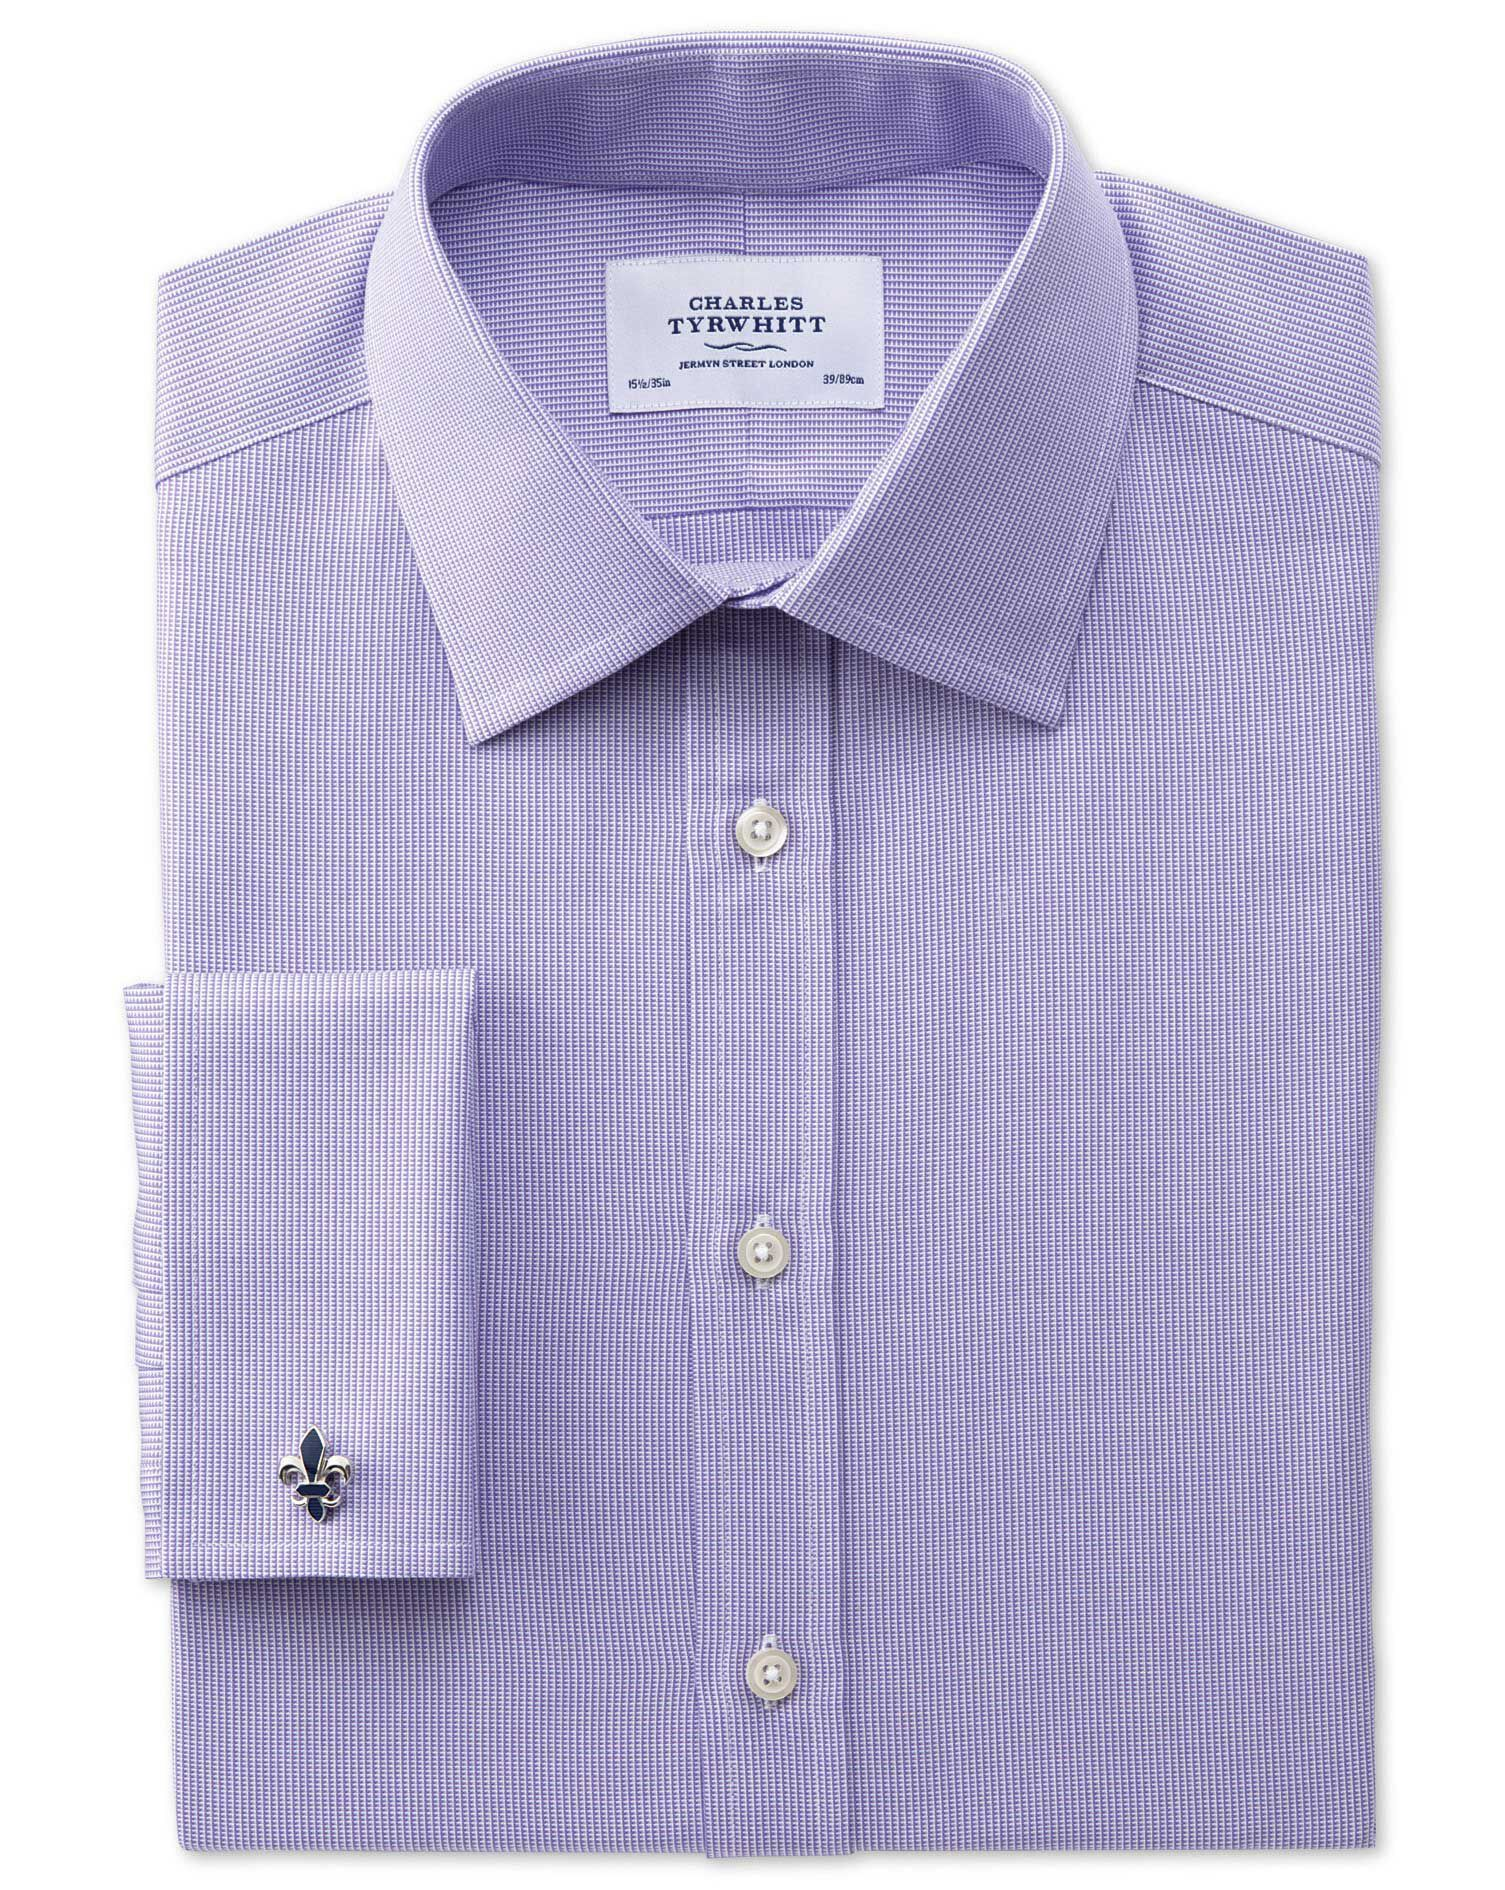 Classic Fit Oxford Lilac Cotton Formal Shirt Double Cuff Size 15.5/36 by Charles Tyrwhitt